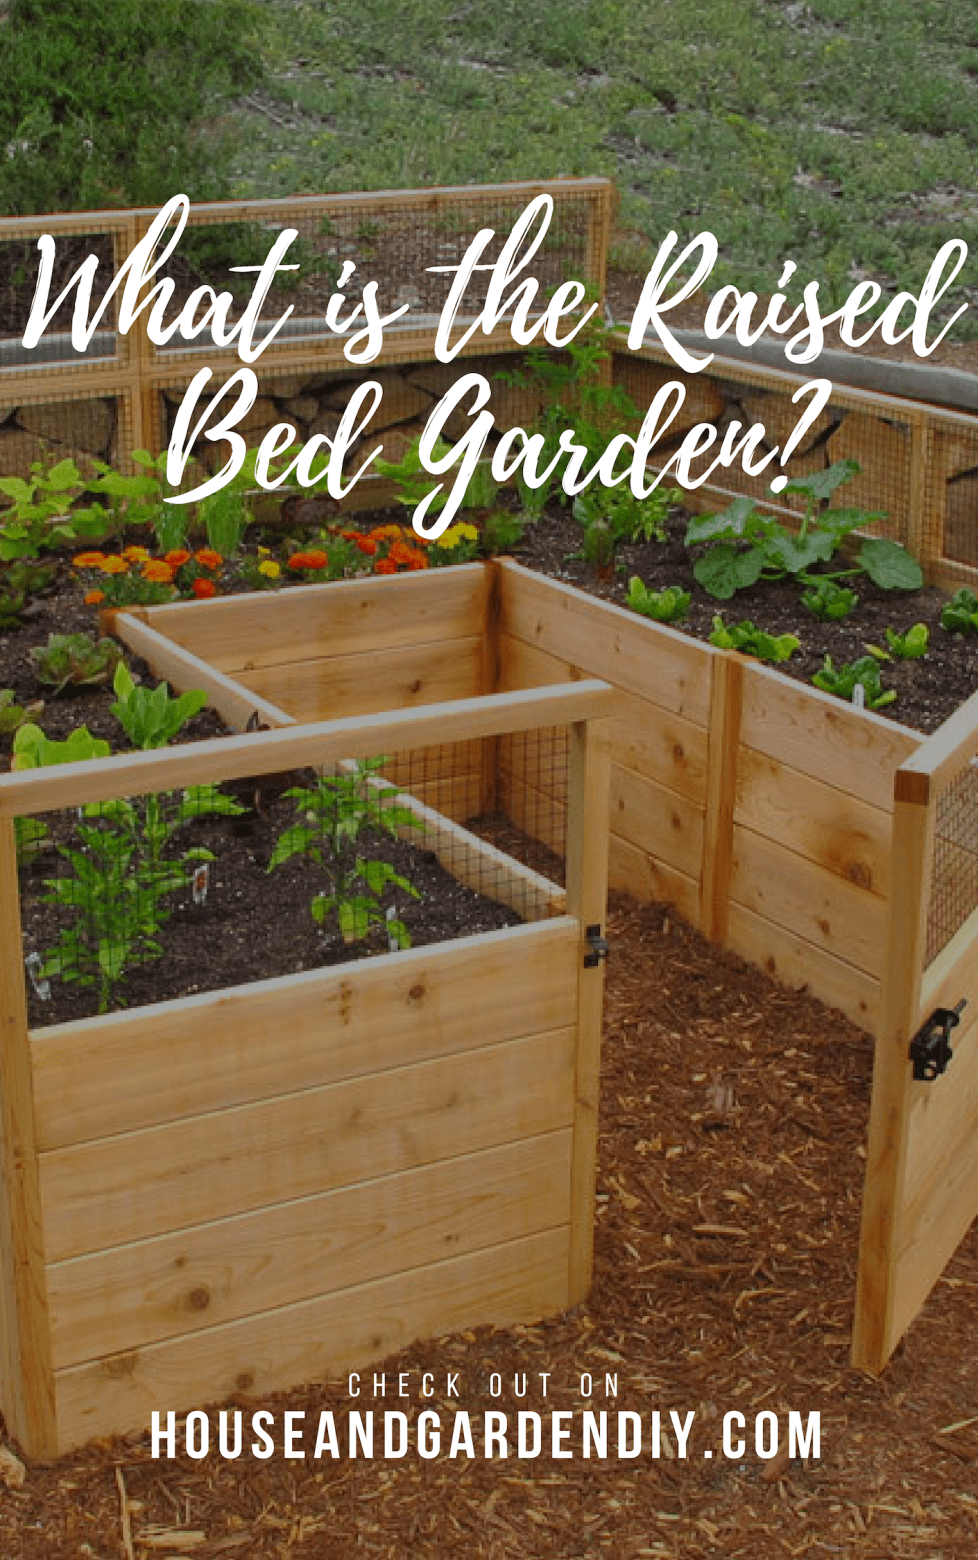 What is the Raised Bed Garden?